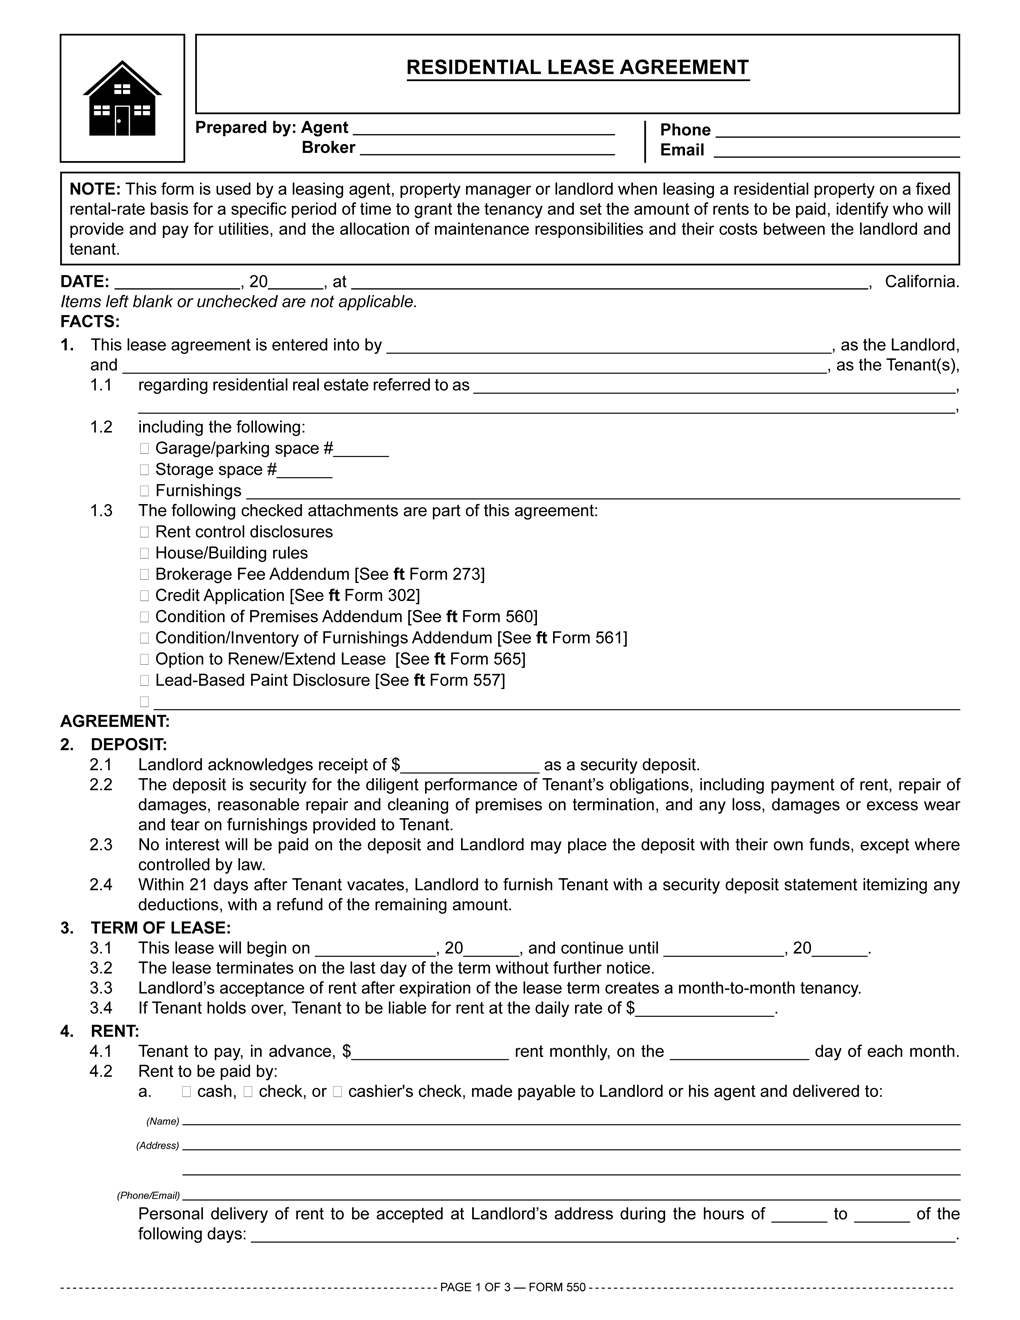 Residential Lease Agreement RPI Form 550 – Landlord Lease Agreement Tempalte